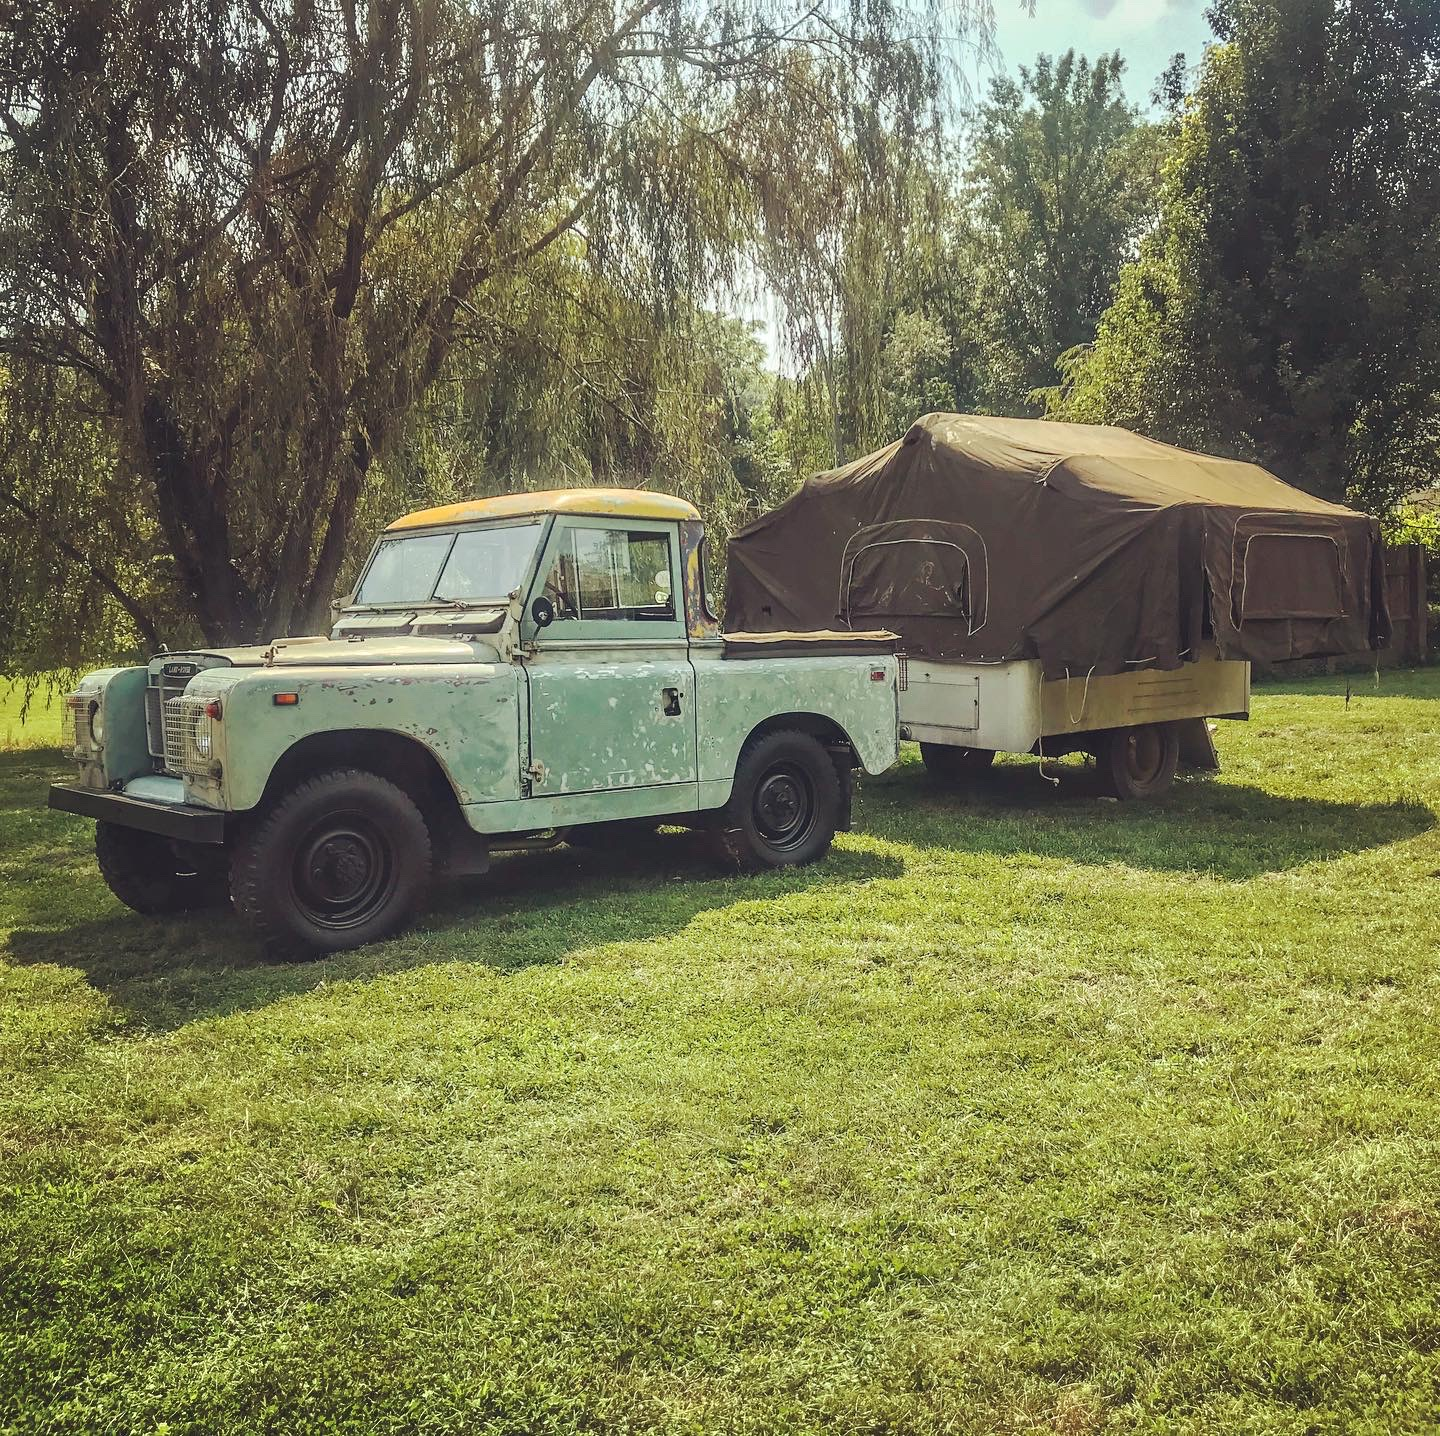 Vintage LandRover Truck - Junk In This Truck